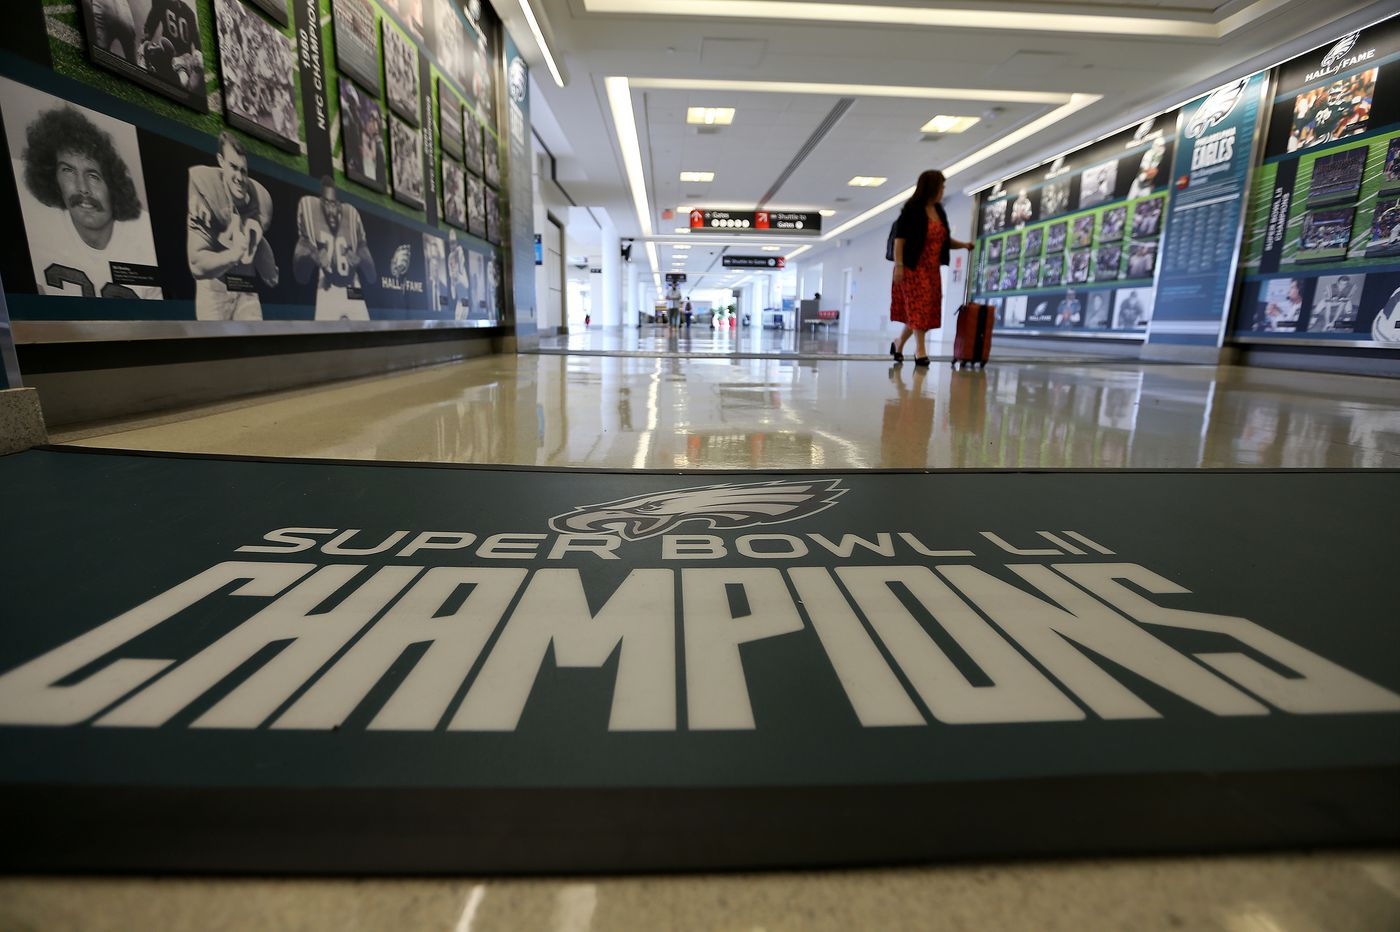 Eagles exhibit at Philly airport lets fans relive Super Bowl victory